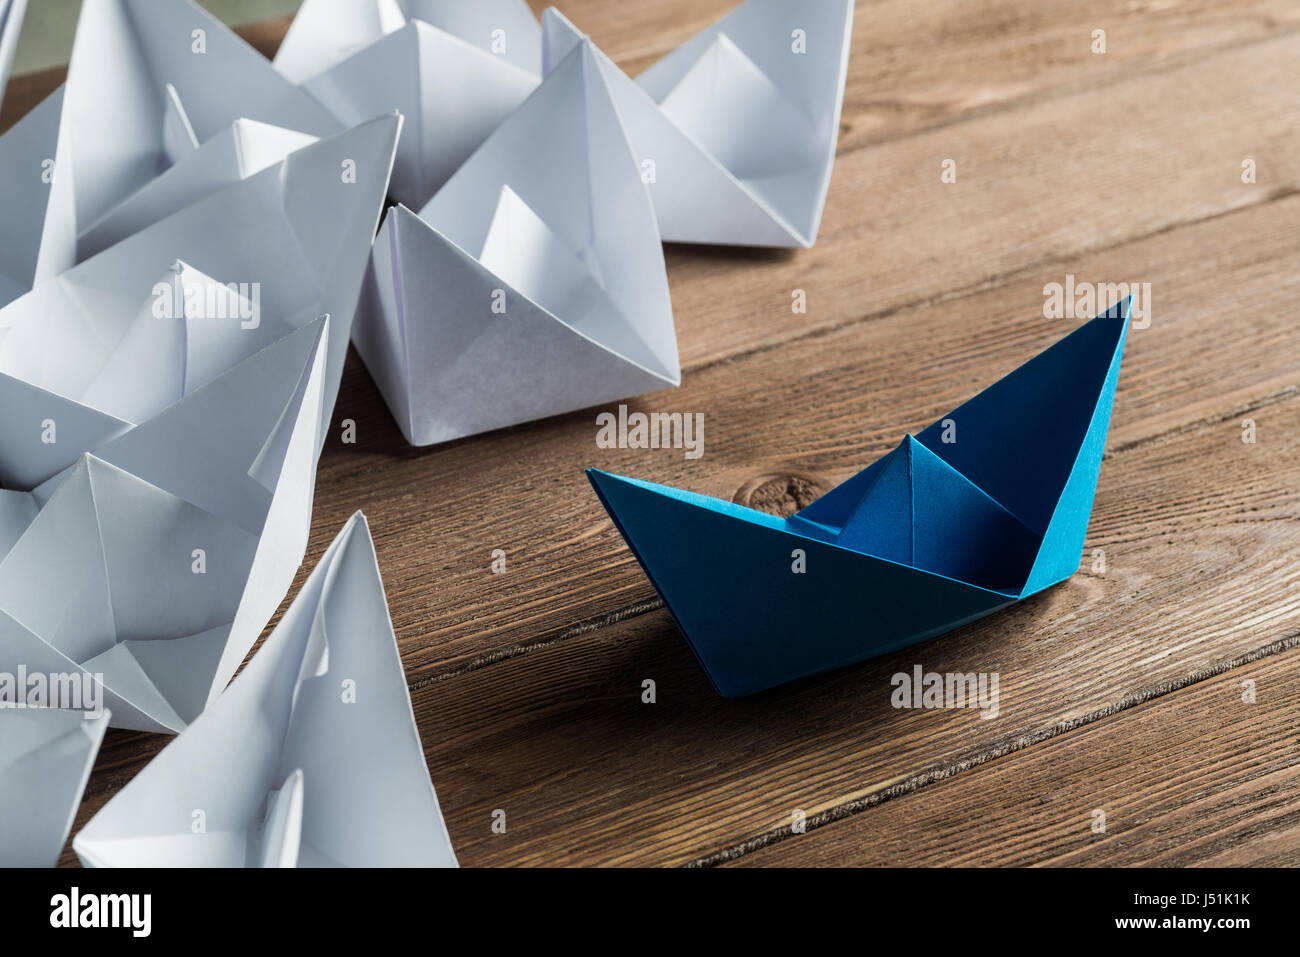 Business leadership concept with white and color paper boats on wooden table - Stock Image